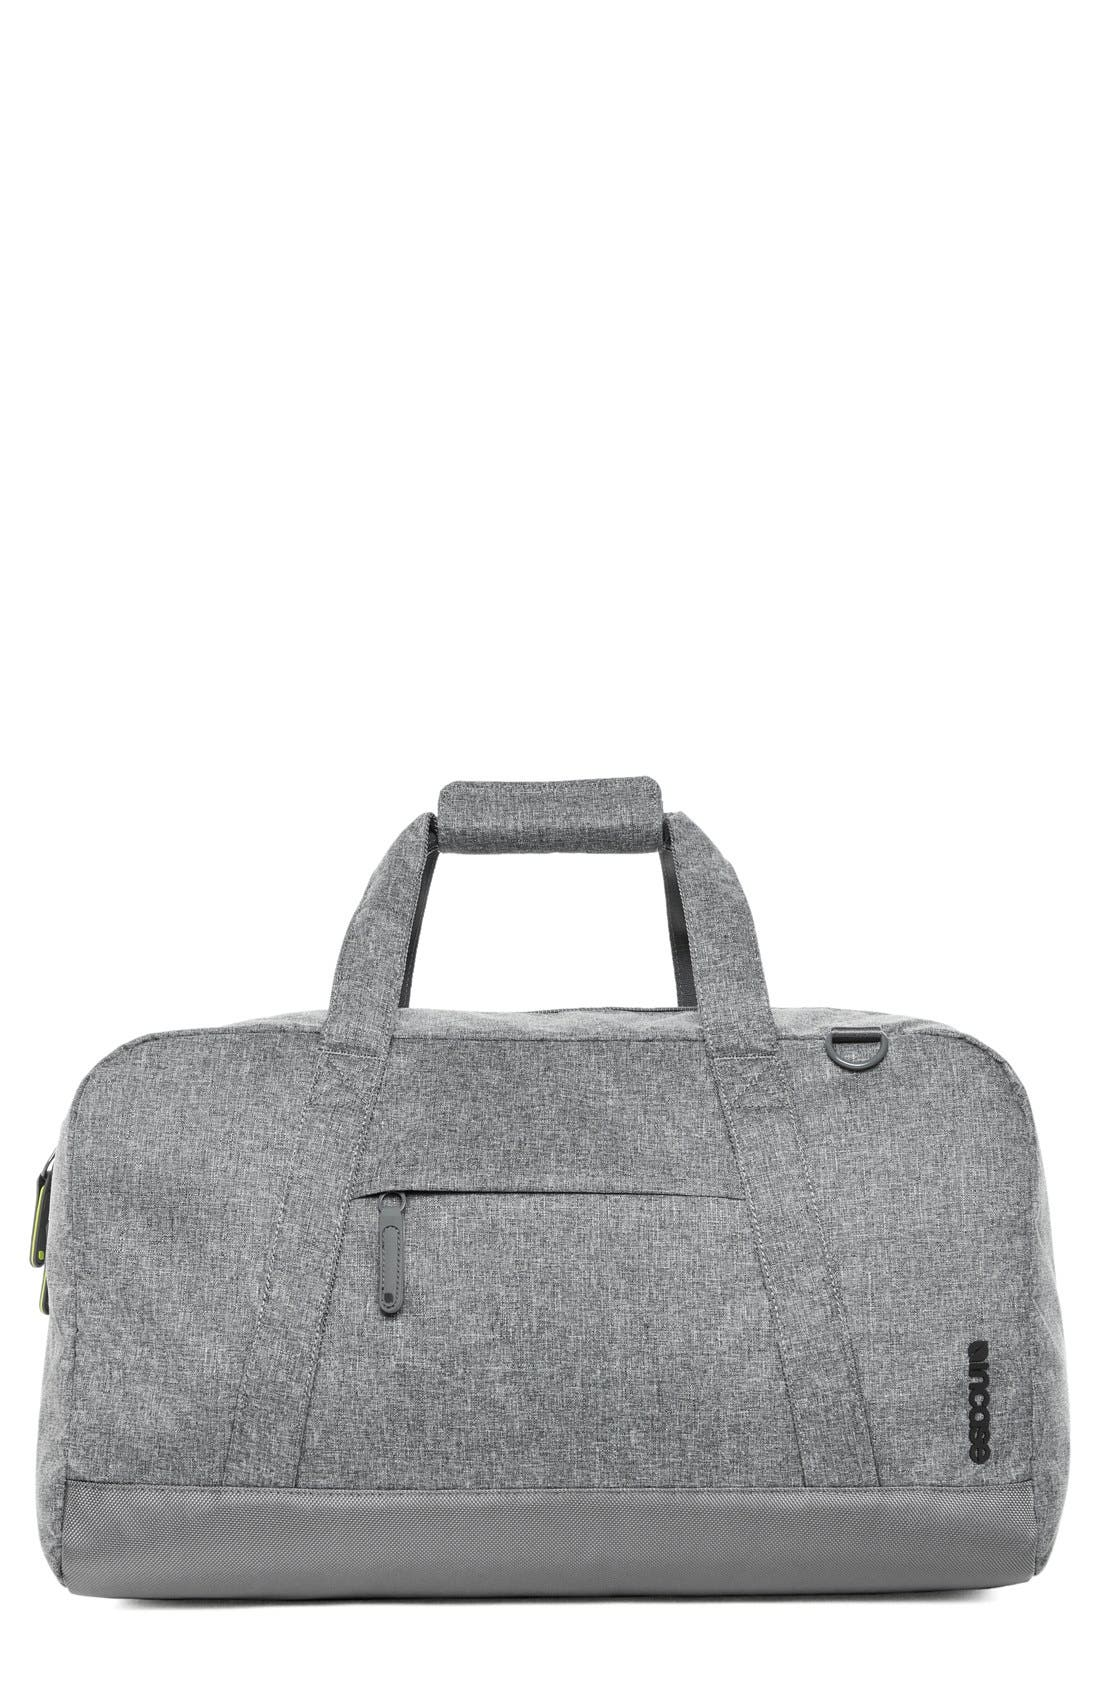 INCASE DESIGNS EO Duffel Bag